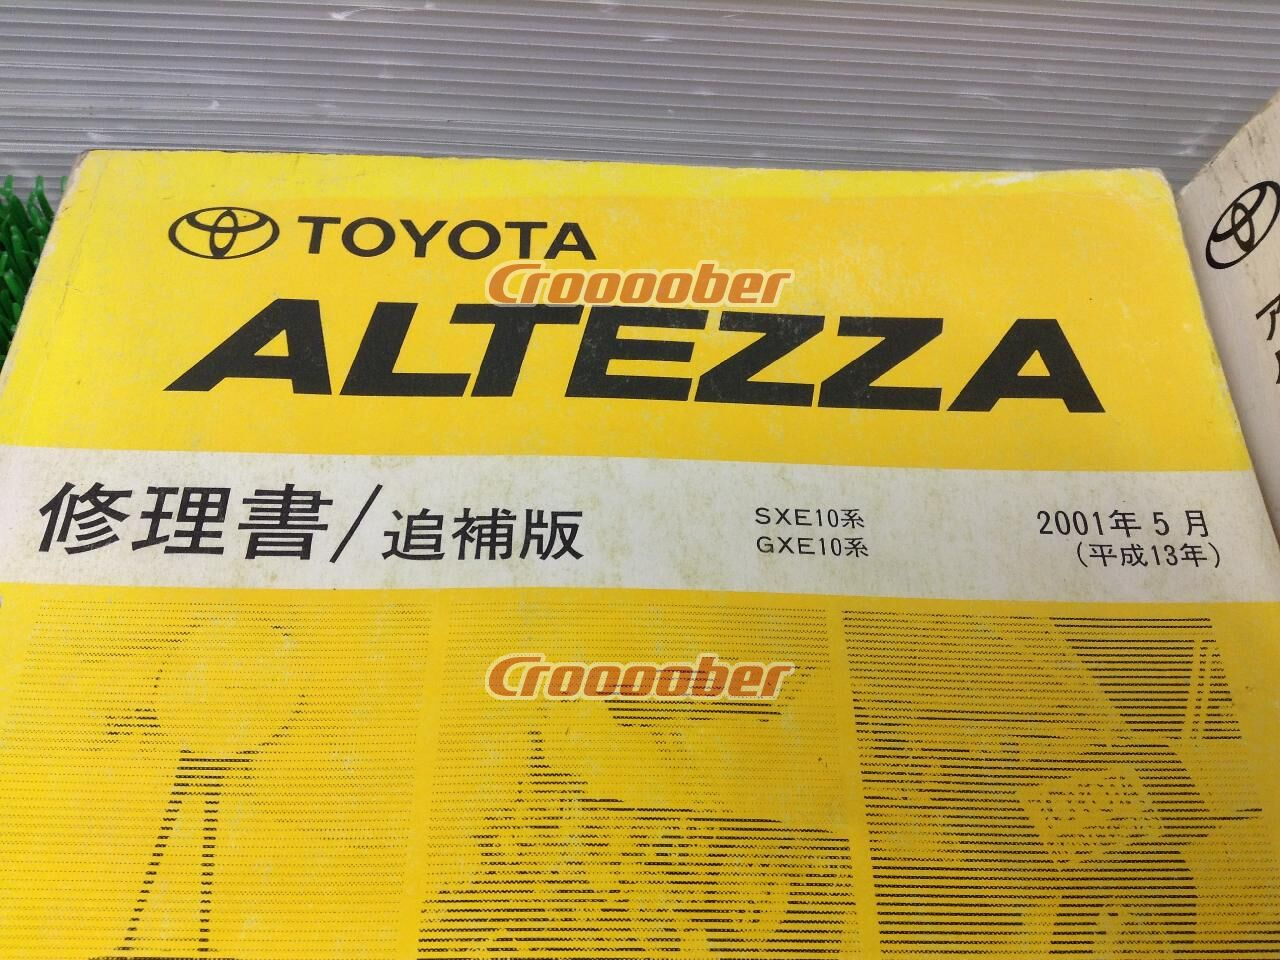 Altezza toyota repair supplement version wiring diagram altezza toyota repair supplement version wiring diagram collection 98 new model car manual 01 other asfbconference2016 Images